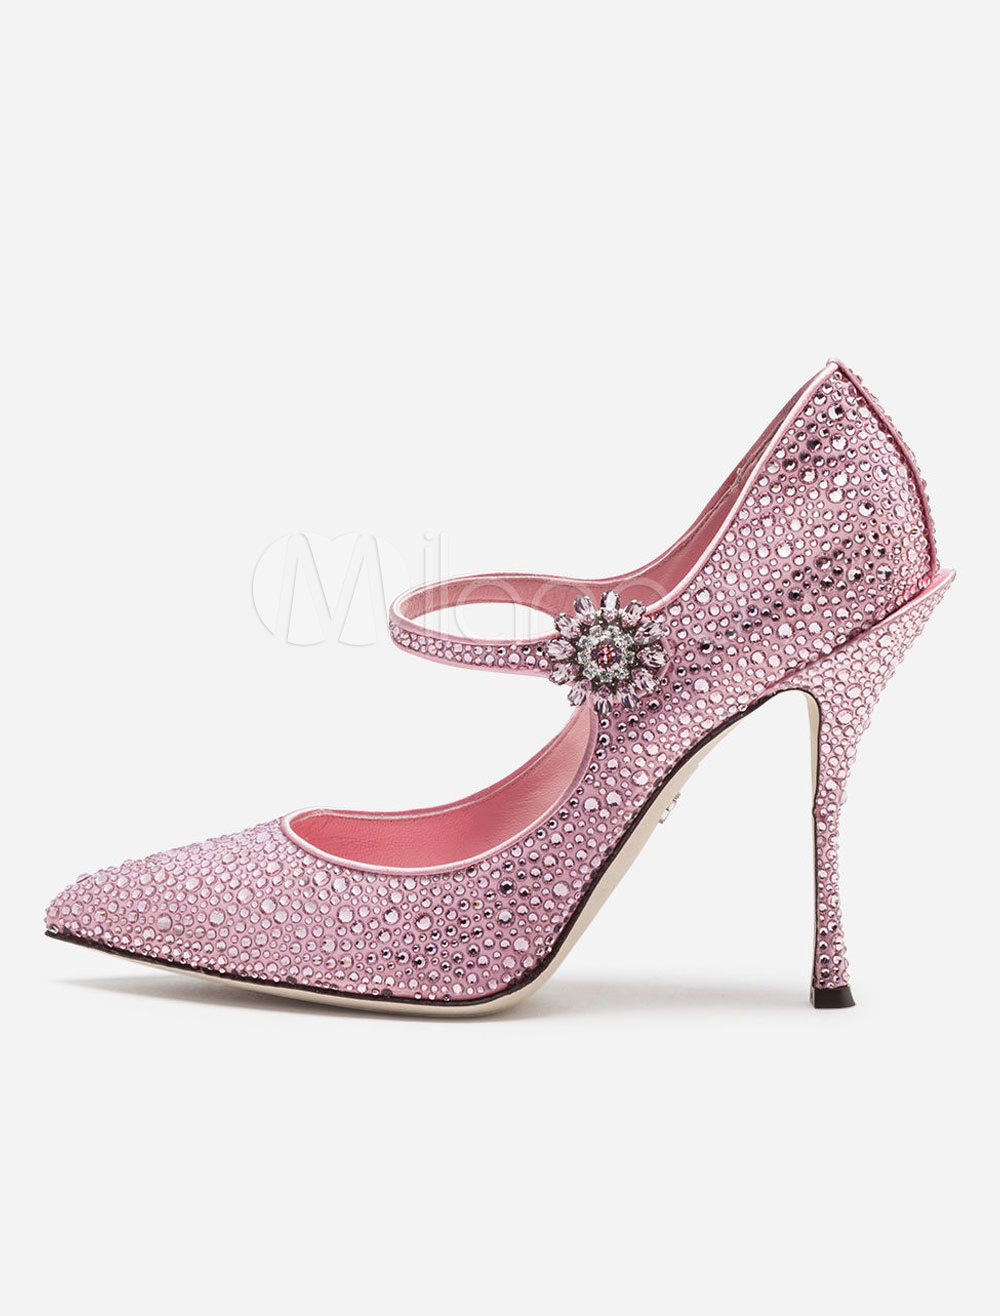 0123265bdd4a Women Mary Jane Shoes Satin Pointed Toe Rhinestone Pink Party Shoes ...